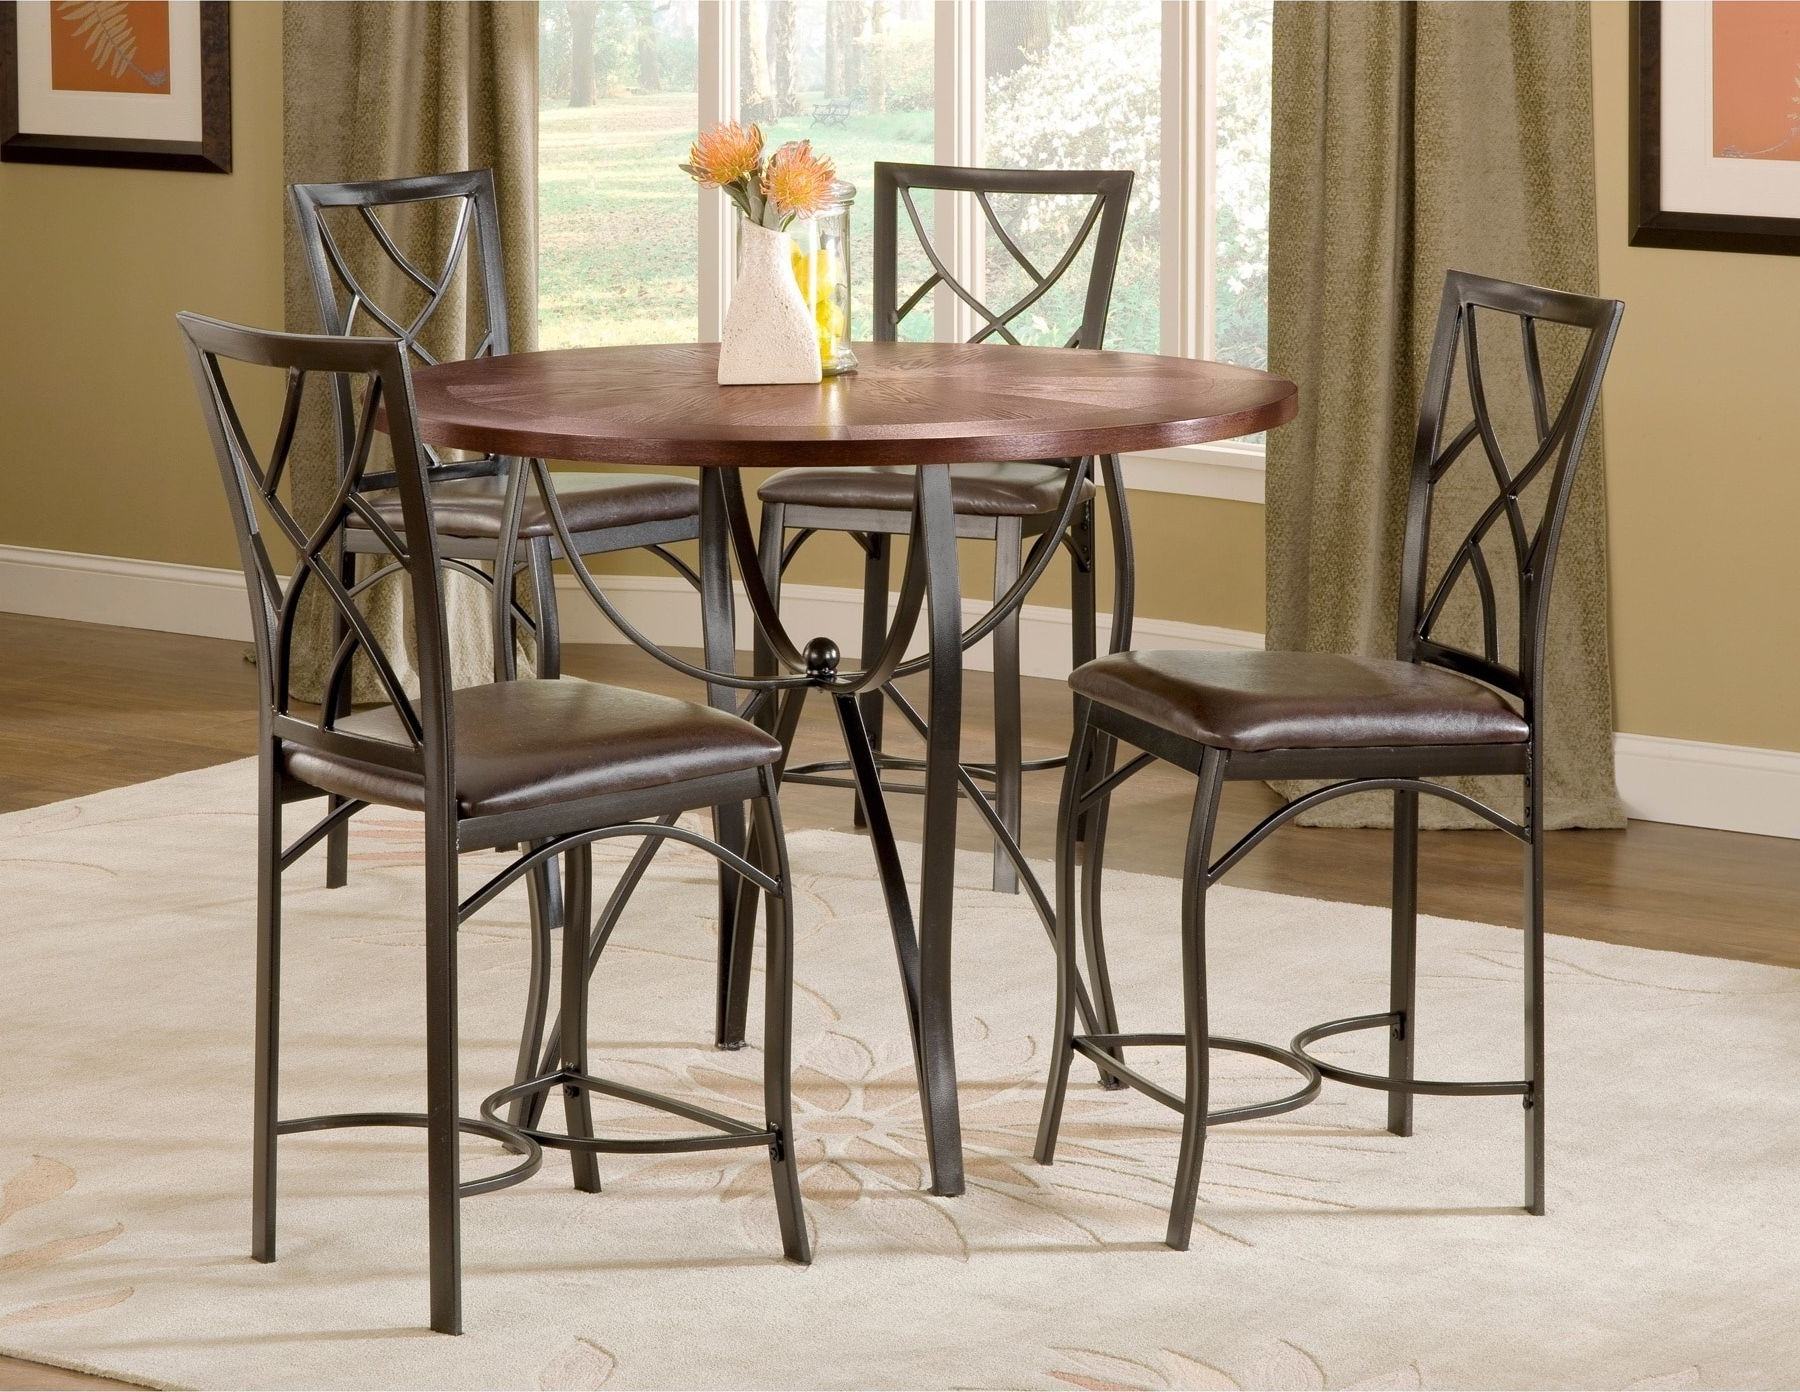 Jaxon 5 Piece Extension Counter Sets With Wood Stools In Most Recent Sanford Merlot 5 Piece Counter Height Table And 4 Chairs Black Metal (Gallery 13 of 25)